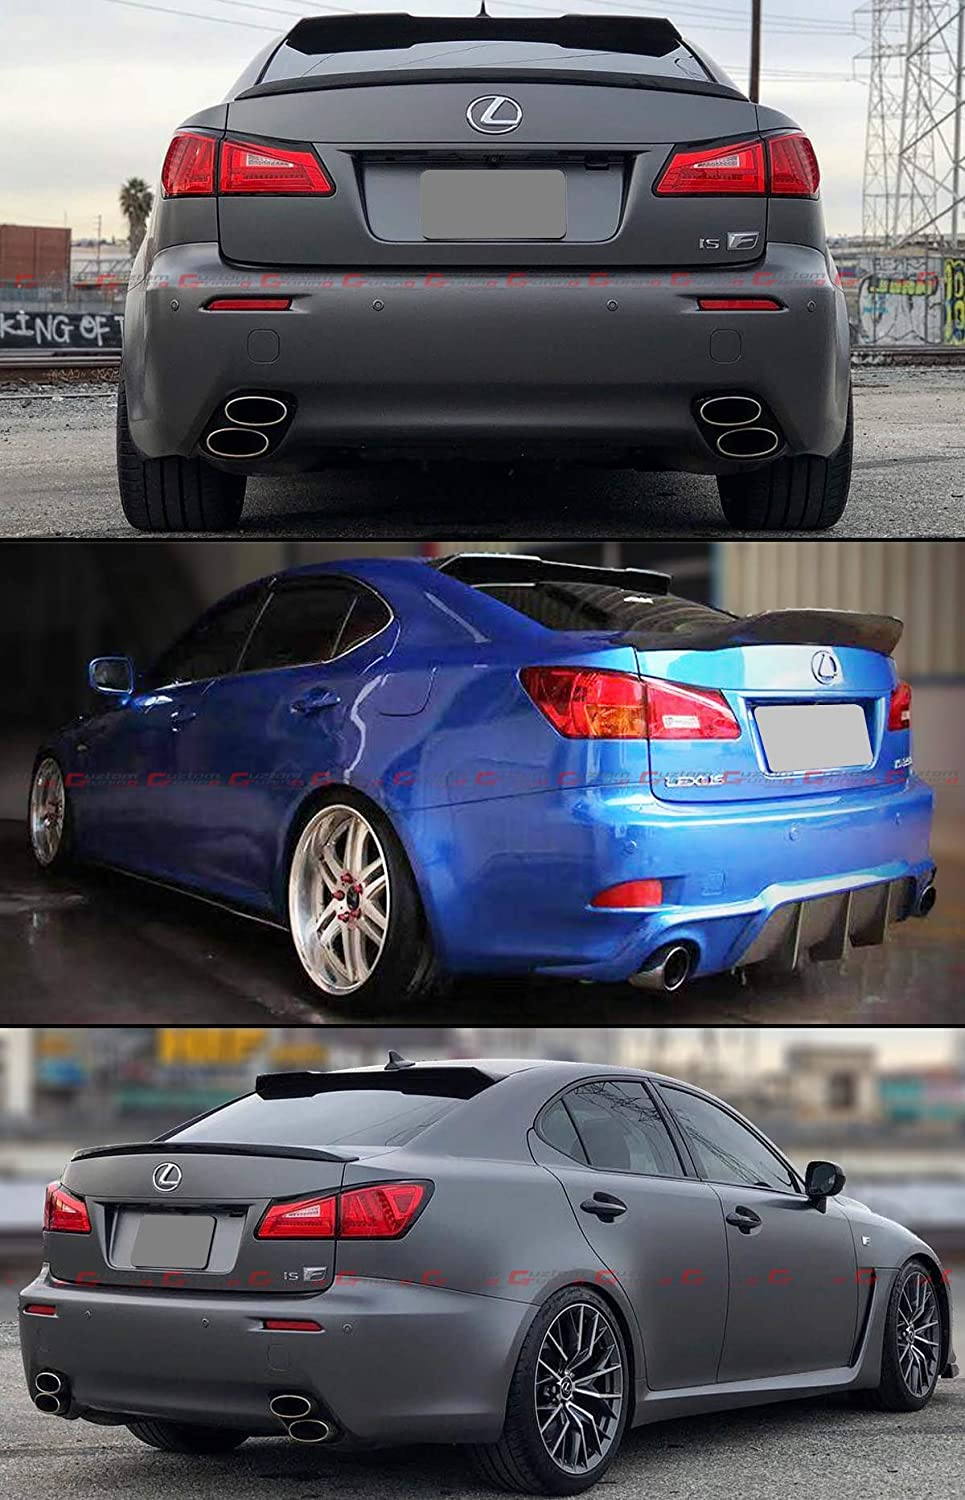 Cuztom Tuning Fits for 2006-2013 Lexus IS250 IS350 ISF Carbon Fiber High Kick R Style F Sport Rear Window Roof Spoiler